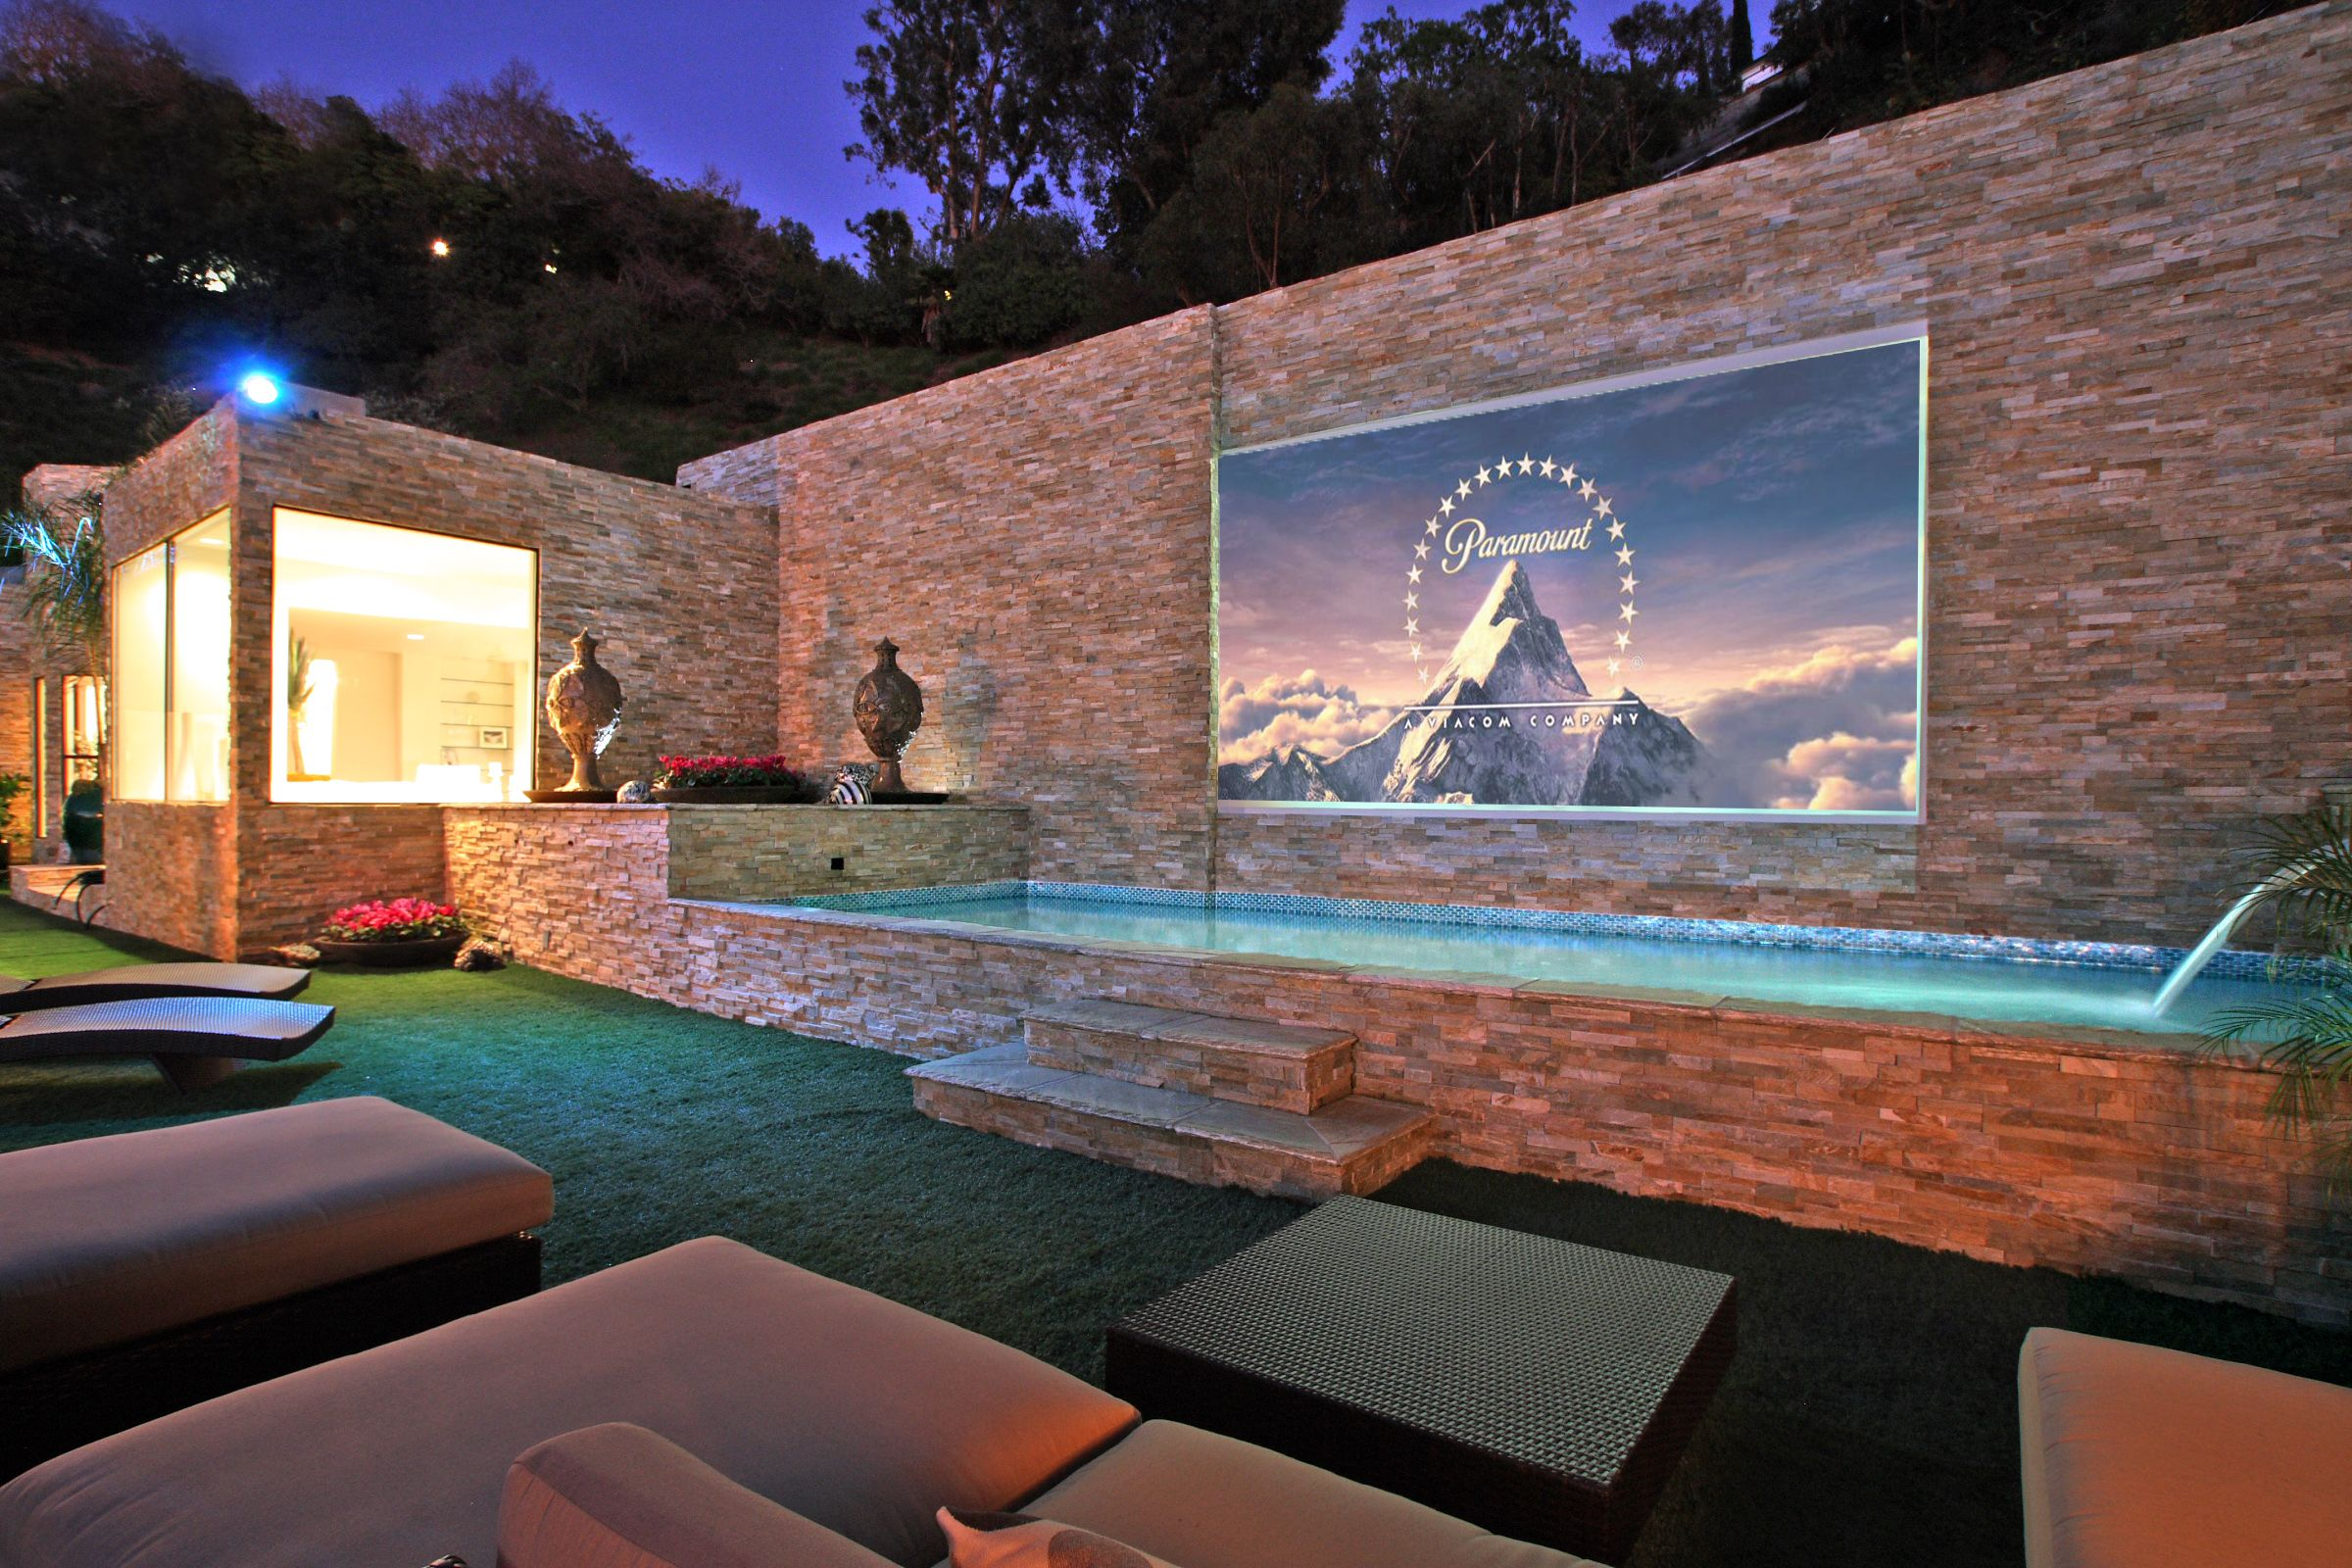 a built in theater by the pool oh you know swimming and watching